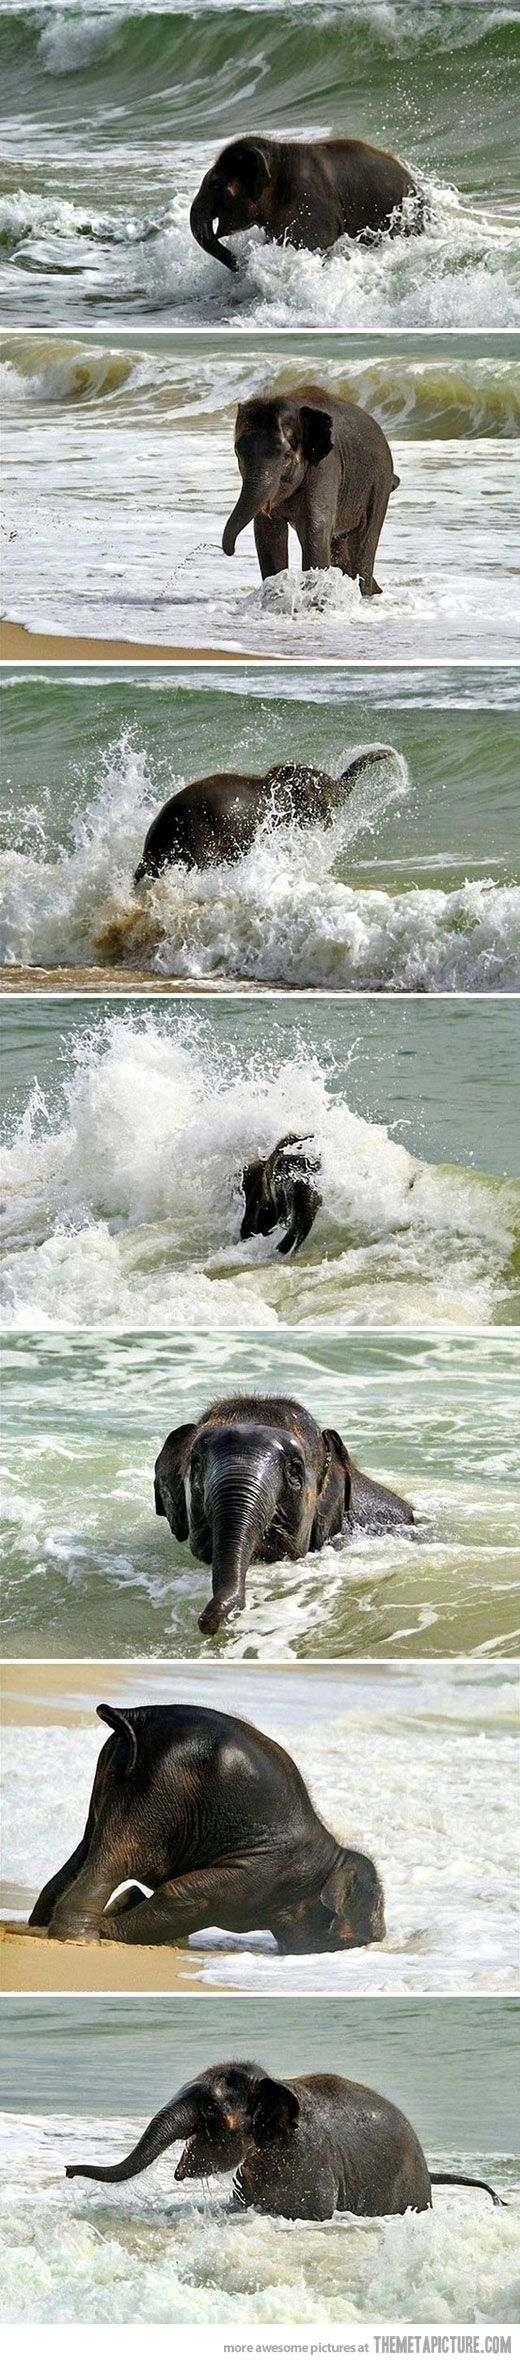 Baby elephant meets the sea for the first time. This is adorable!